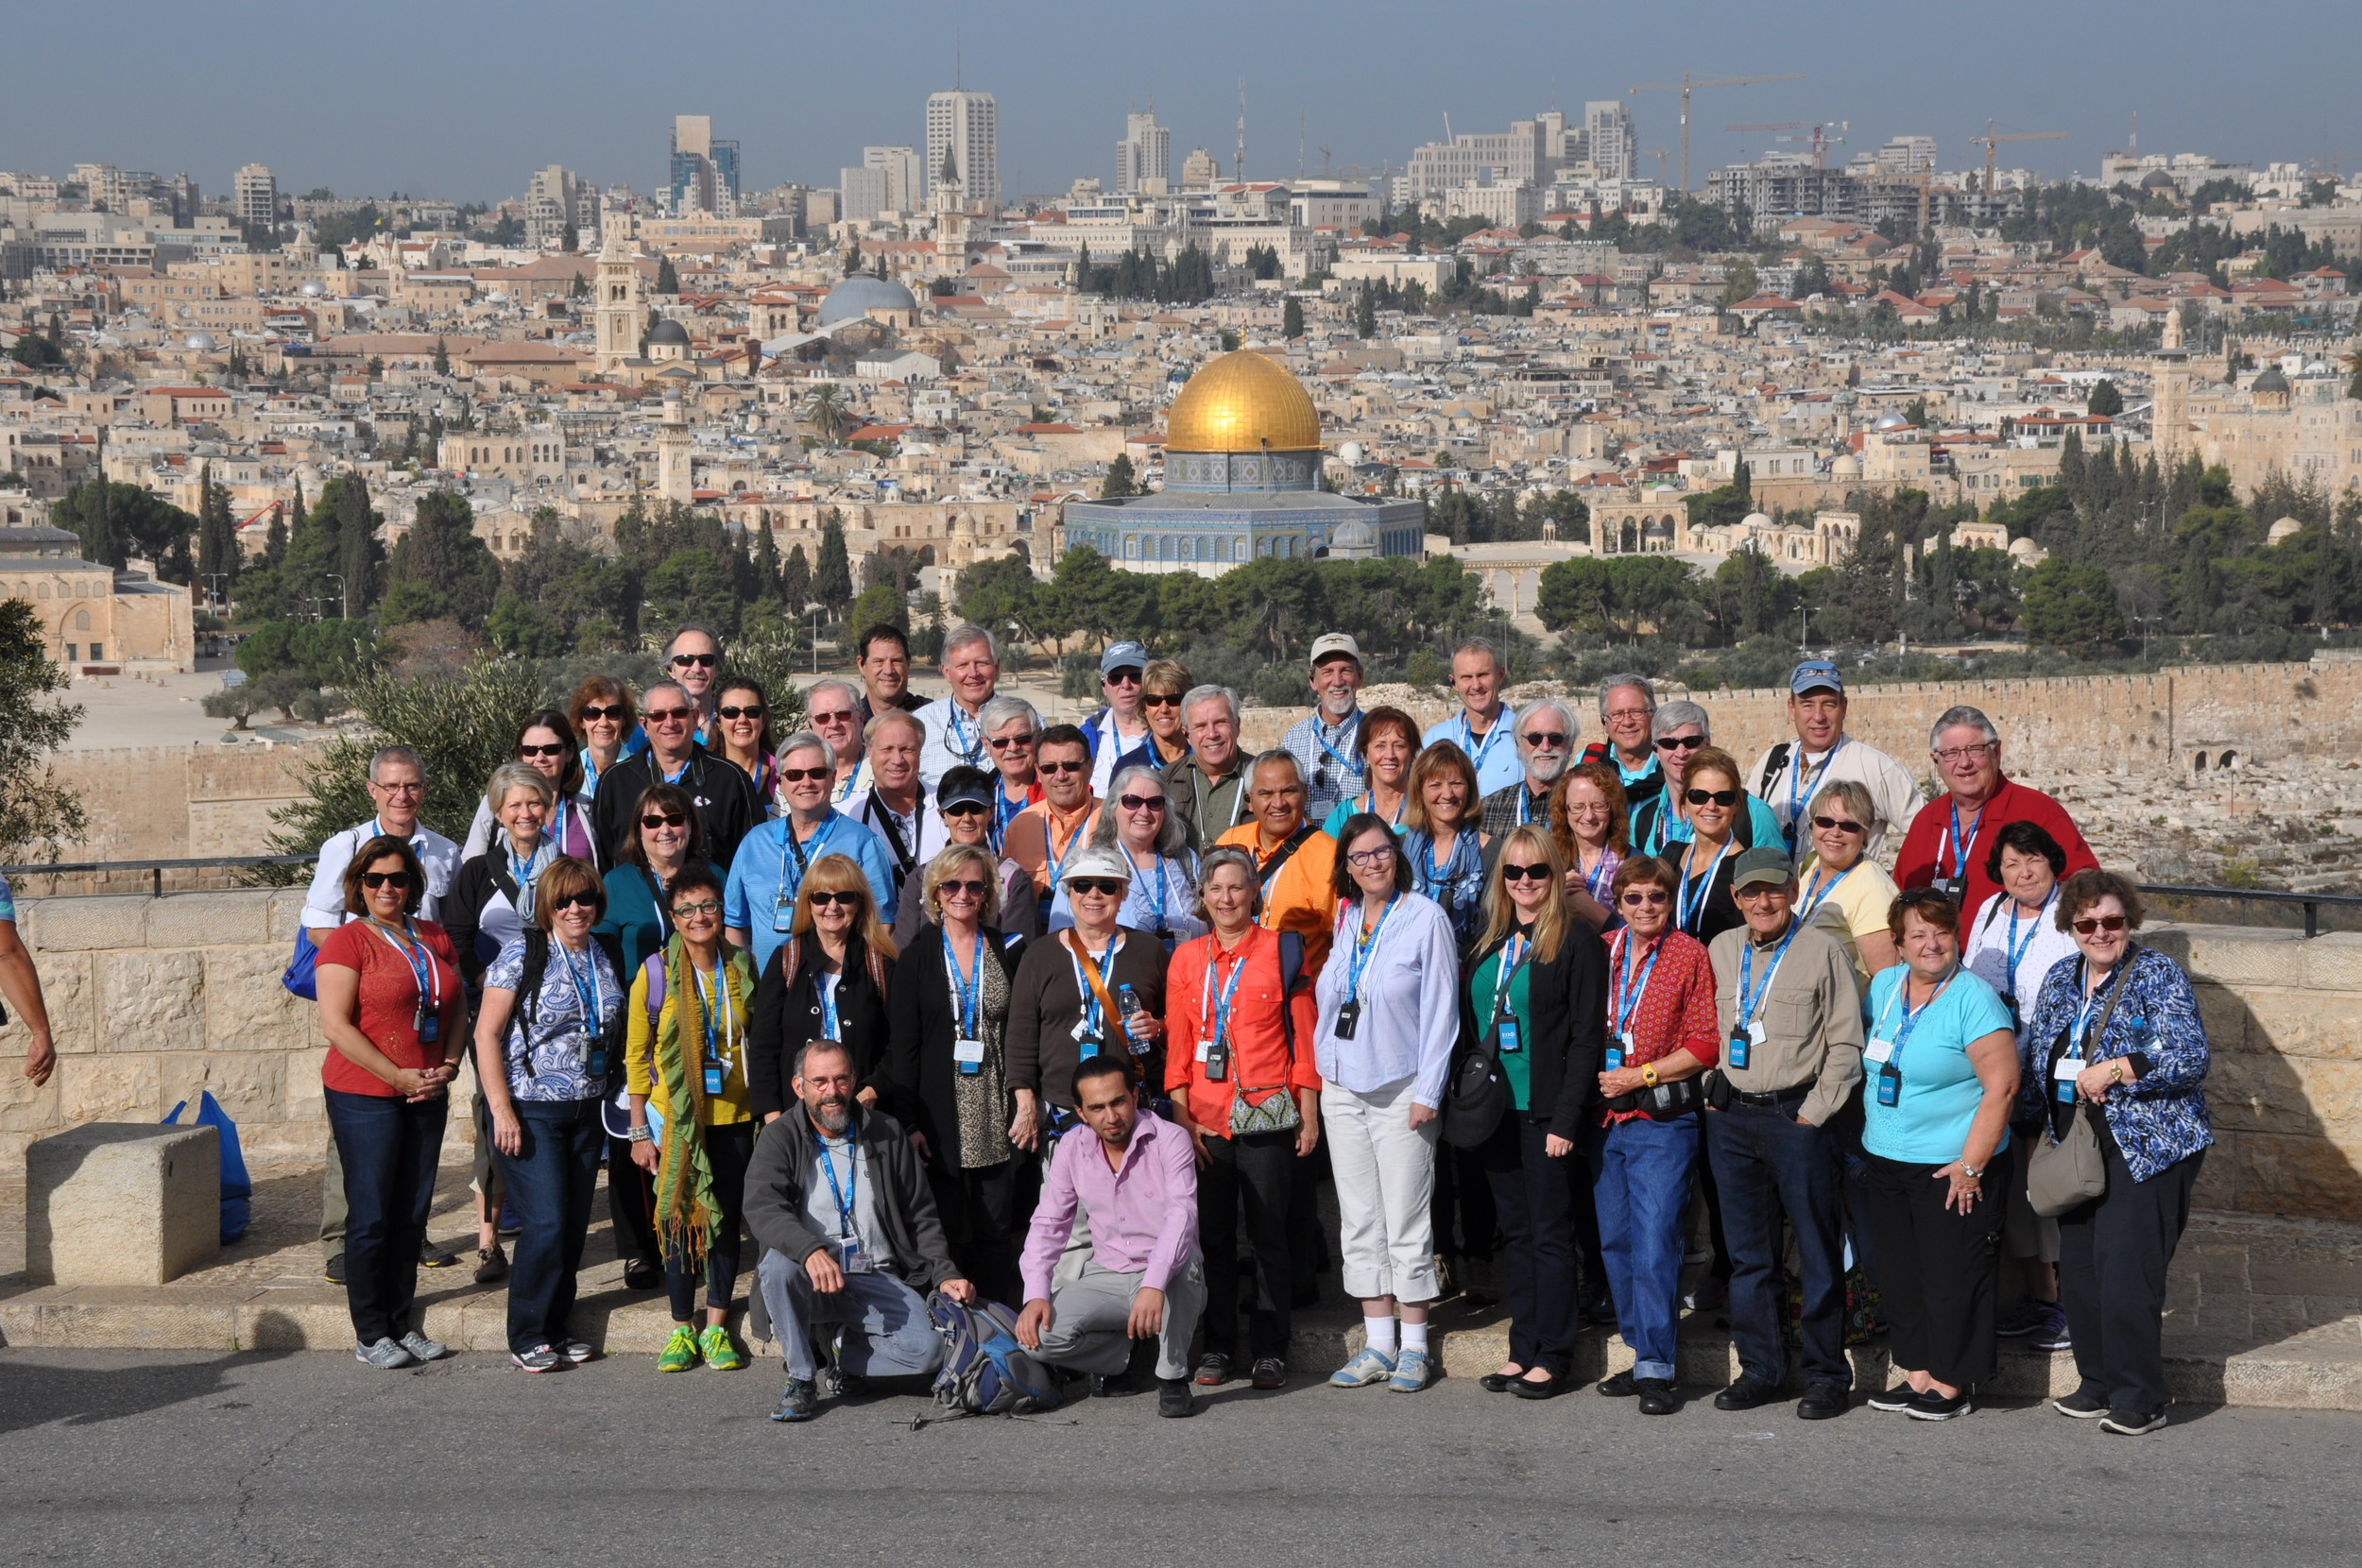 EO Group traveling week of 11/17/14